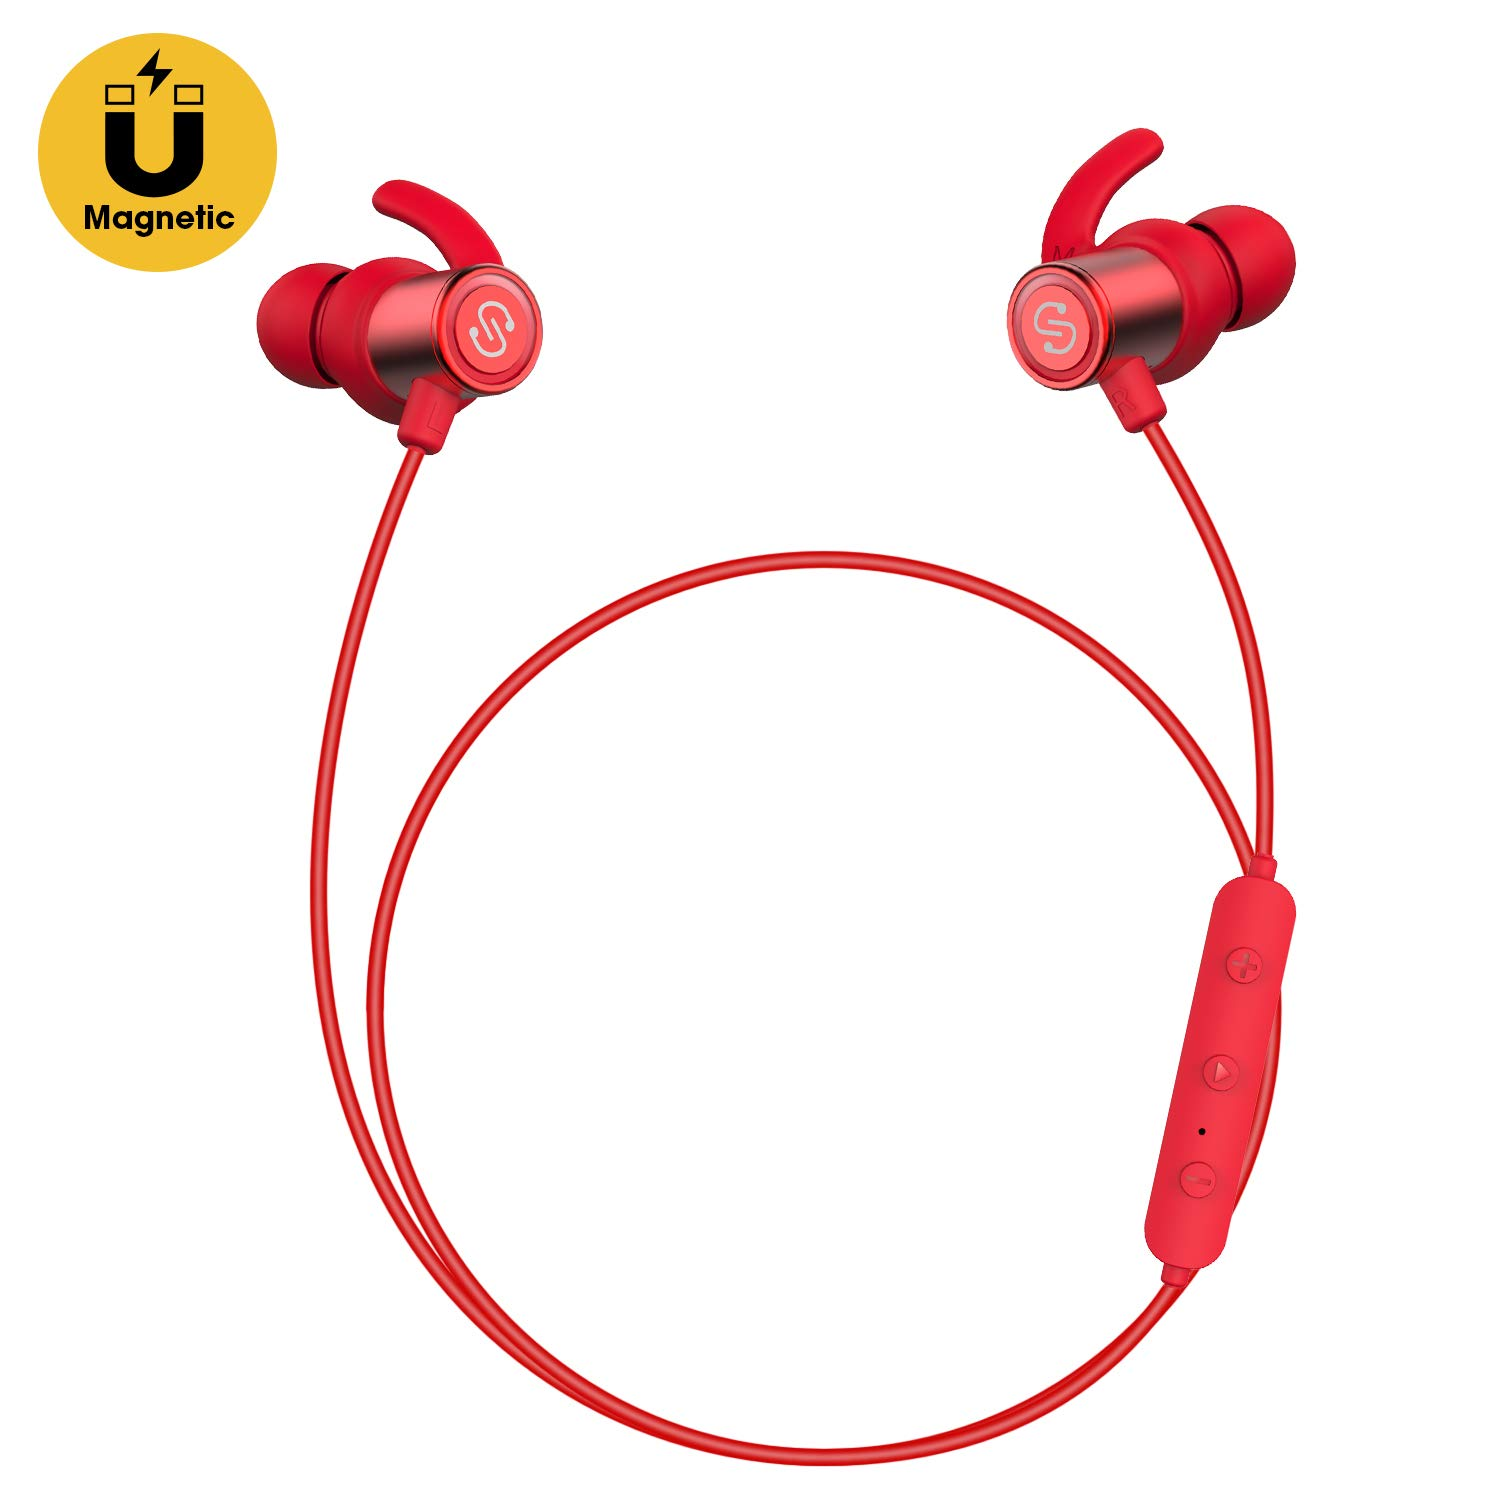 SoundPEATS Bluetooth Earphones with Mic, Q30 Dual 4.1 Magnetic Wireless Headsets IPX 6 for Gym,Secure Fit In Ear works with iPhone, iPad, Samsung and More,Super Bass,Lightweight,8 Hours Play Time